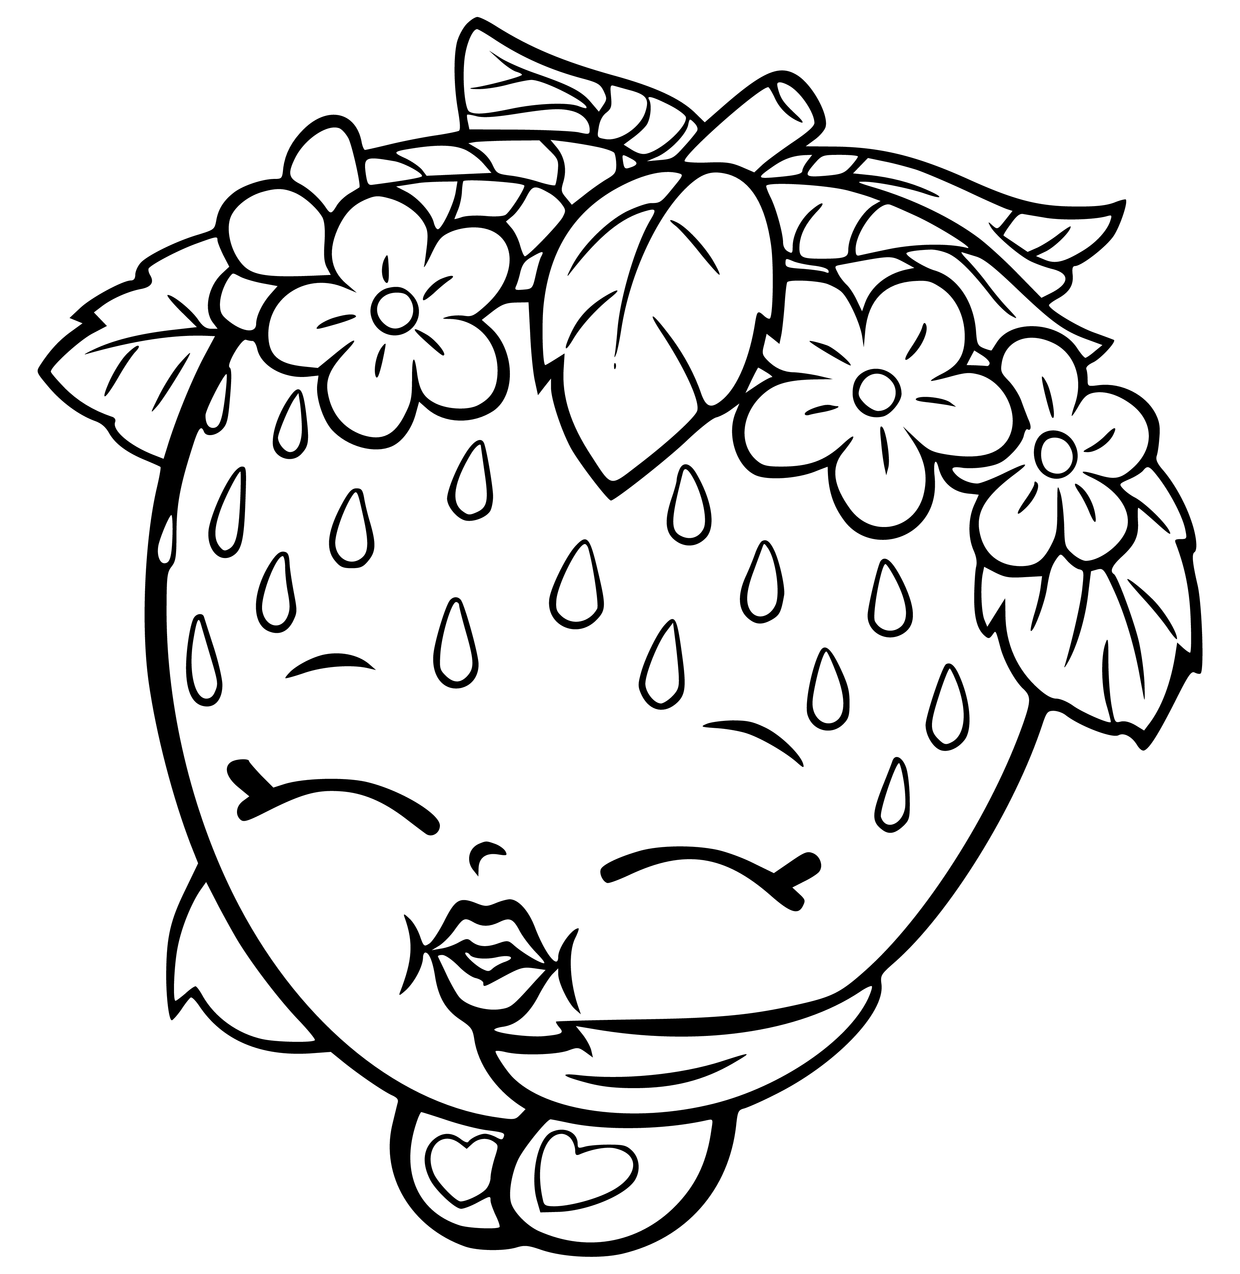 Shopkins Coloring Pages Best Coloring Pages For Kids Shopkins Colouring Pages Coloring Pages For Girls Shopkin Coloring Pages